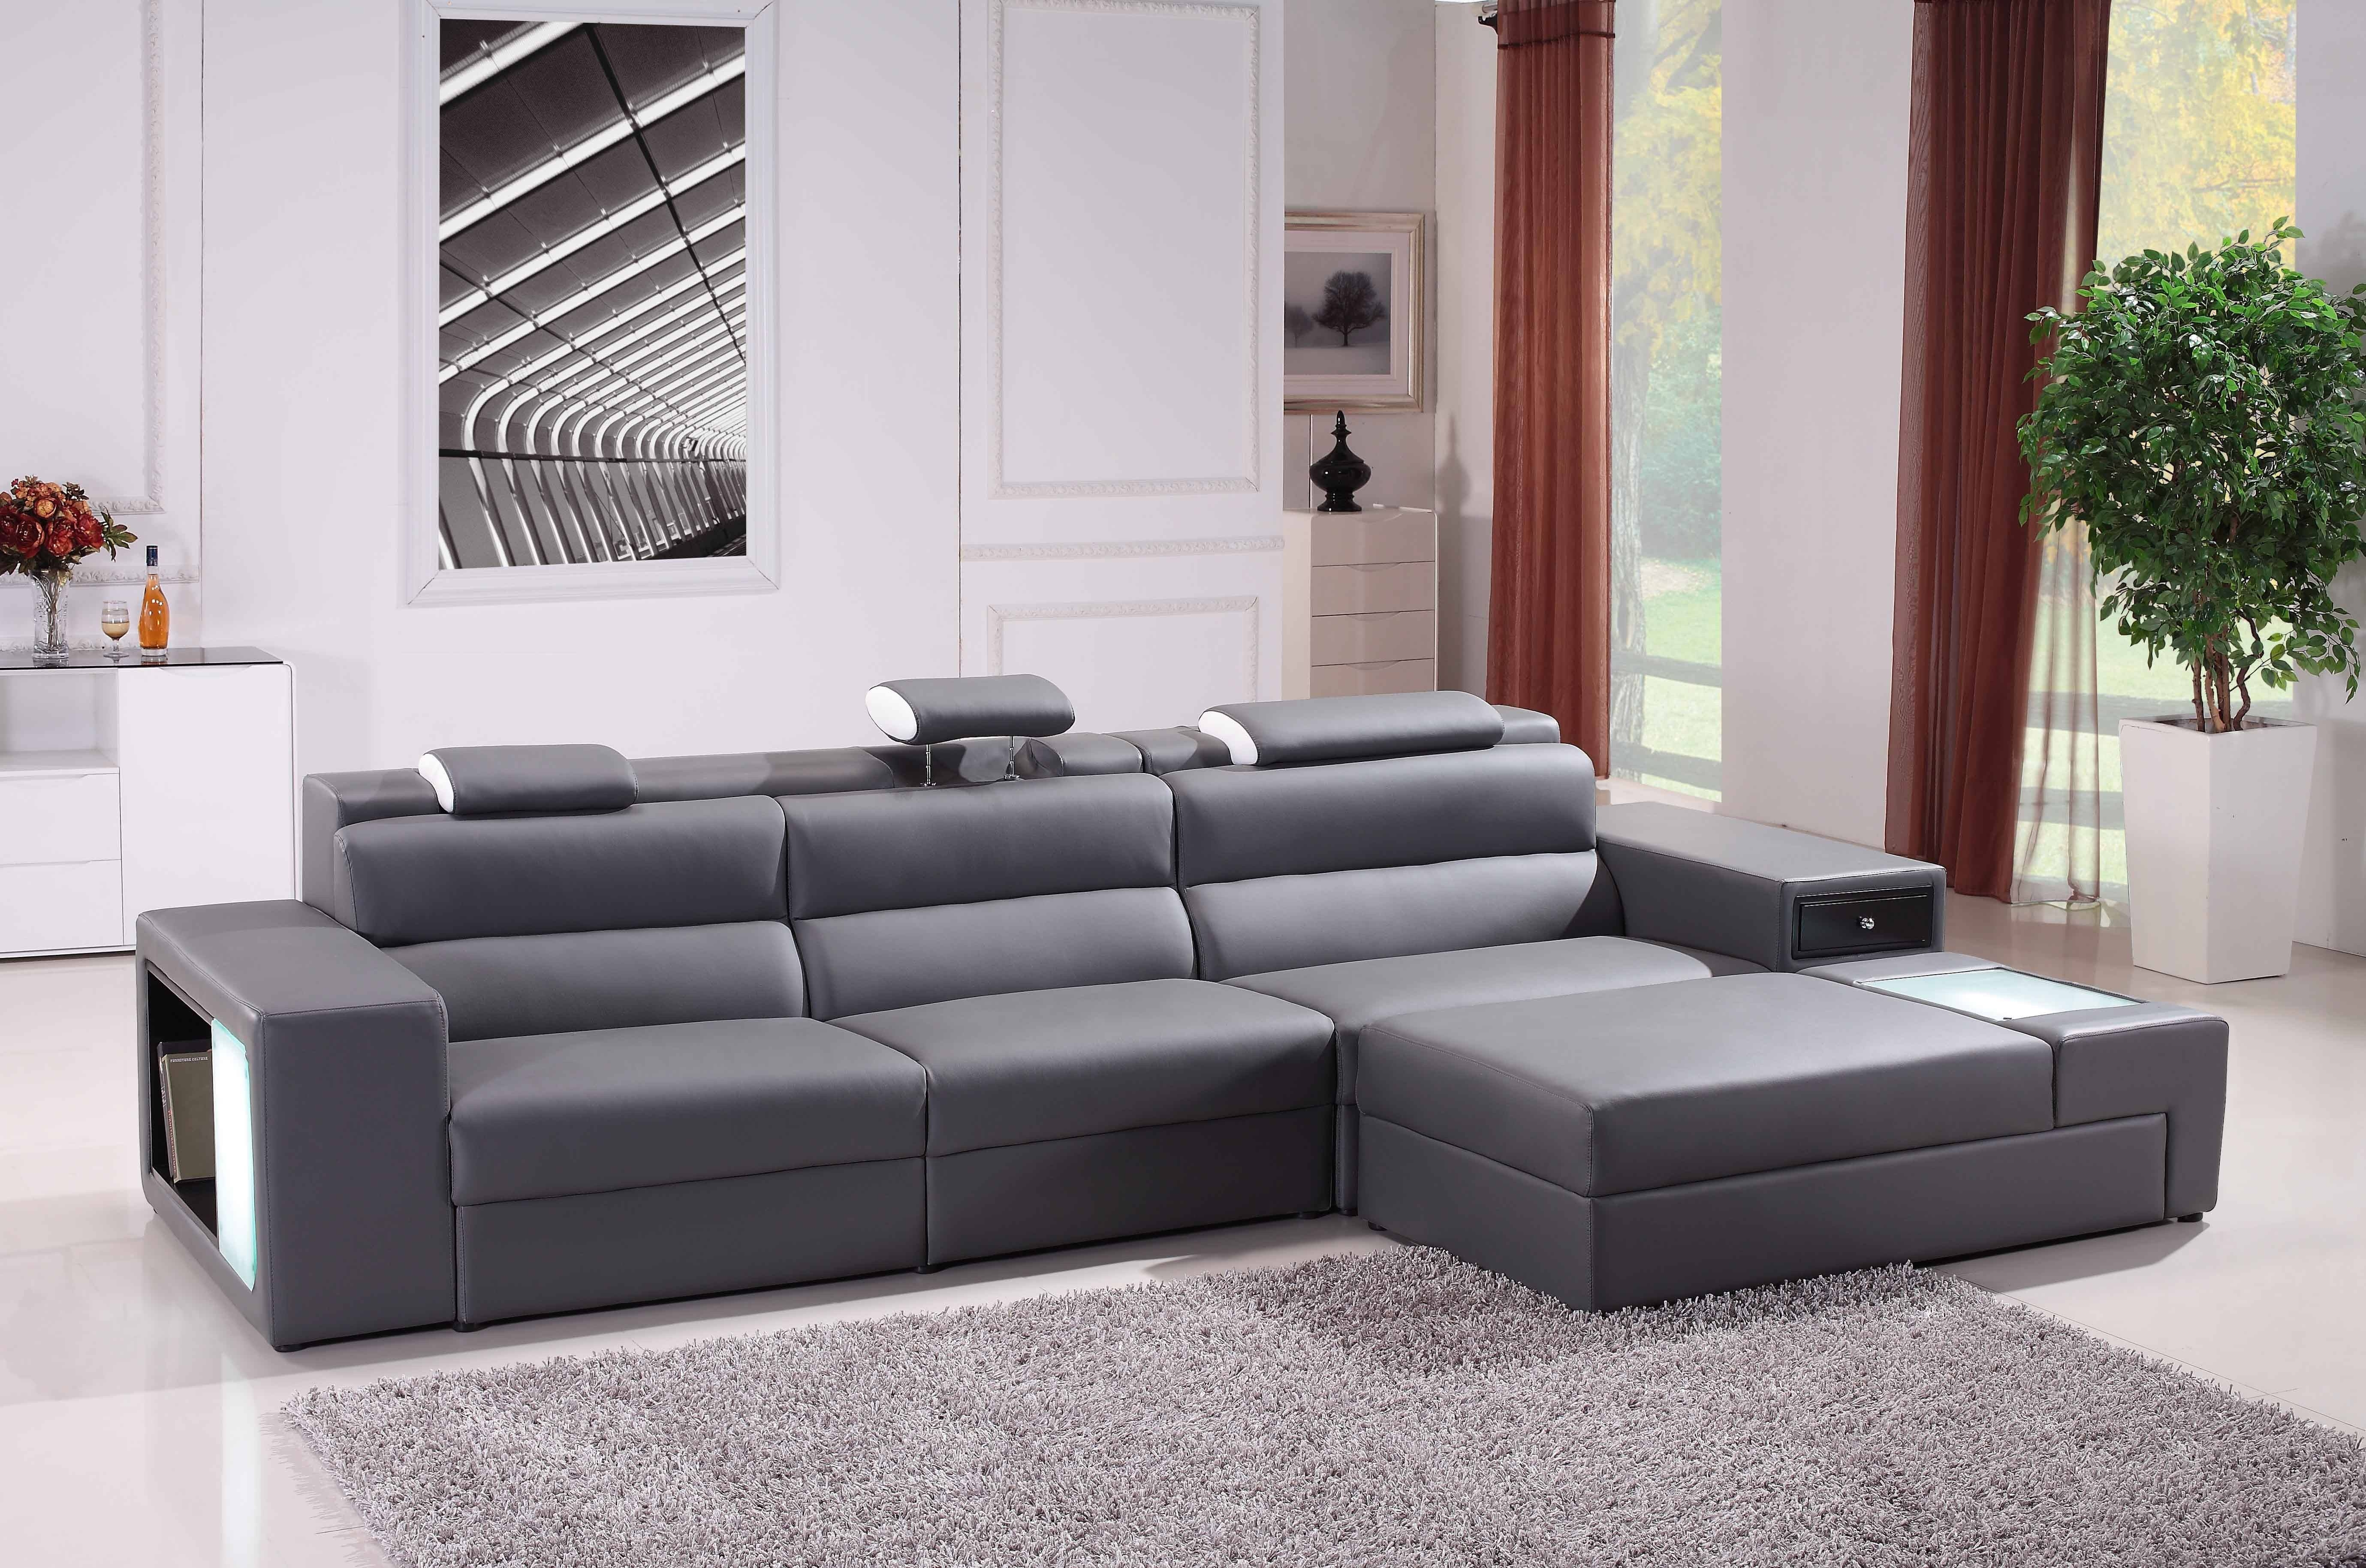 Living Room : Fashionable Chic Brown Leather Sectional Sofa With within Durable Sectional Sofa (Image 21 of 30)